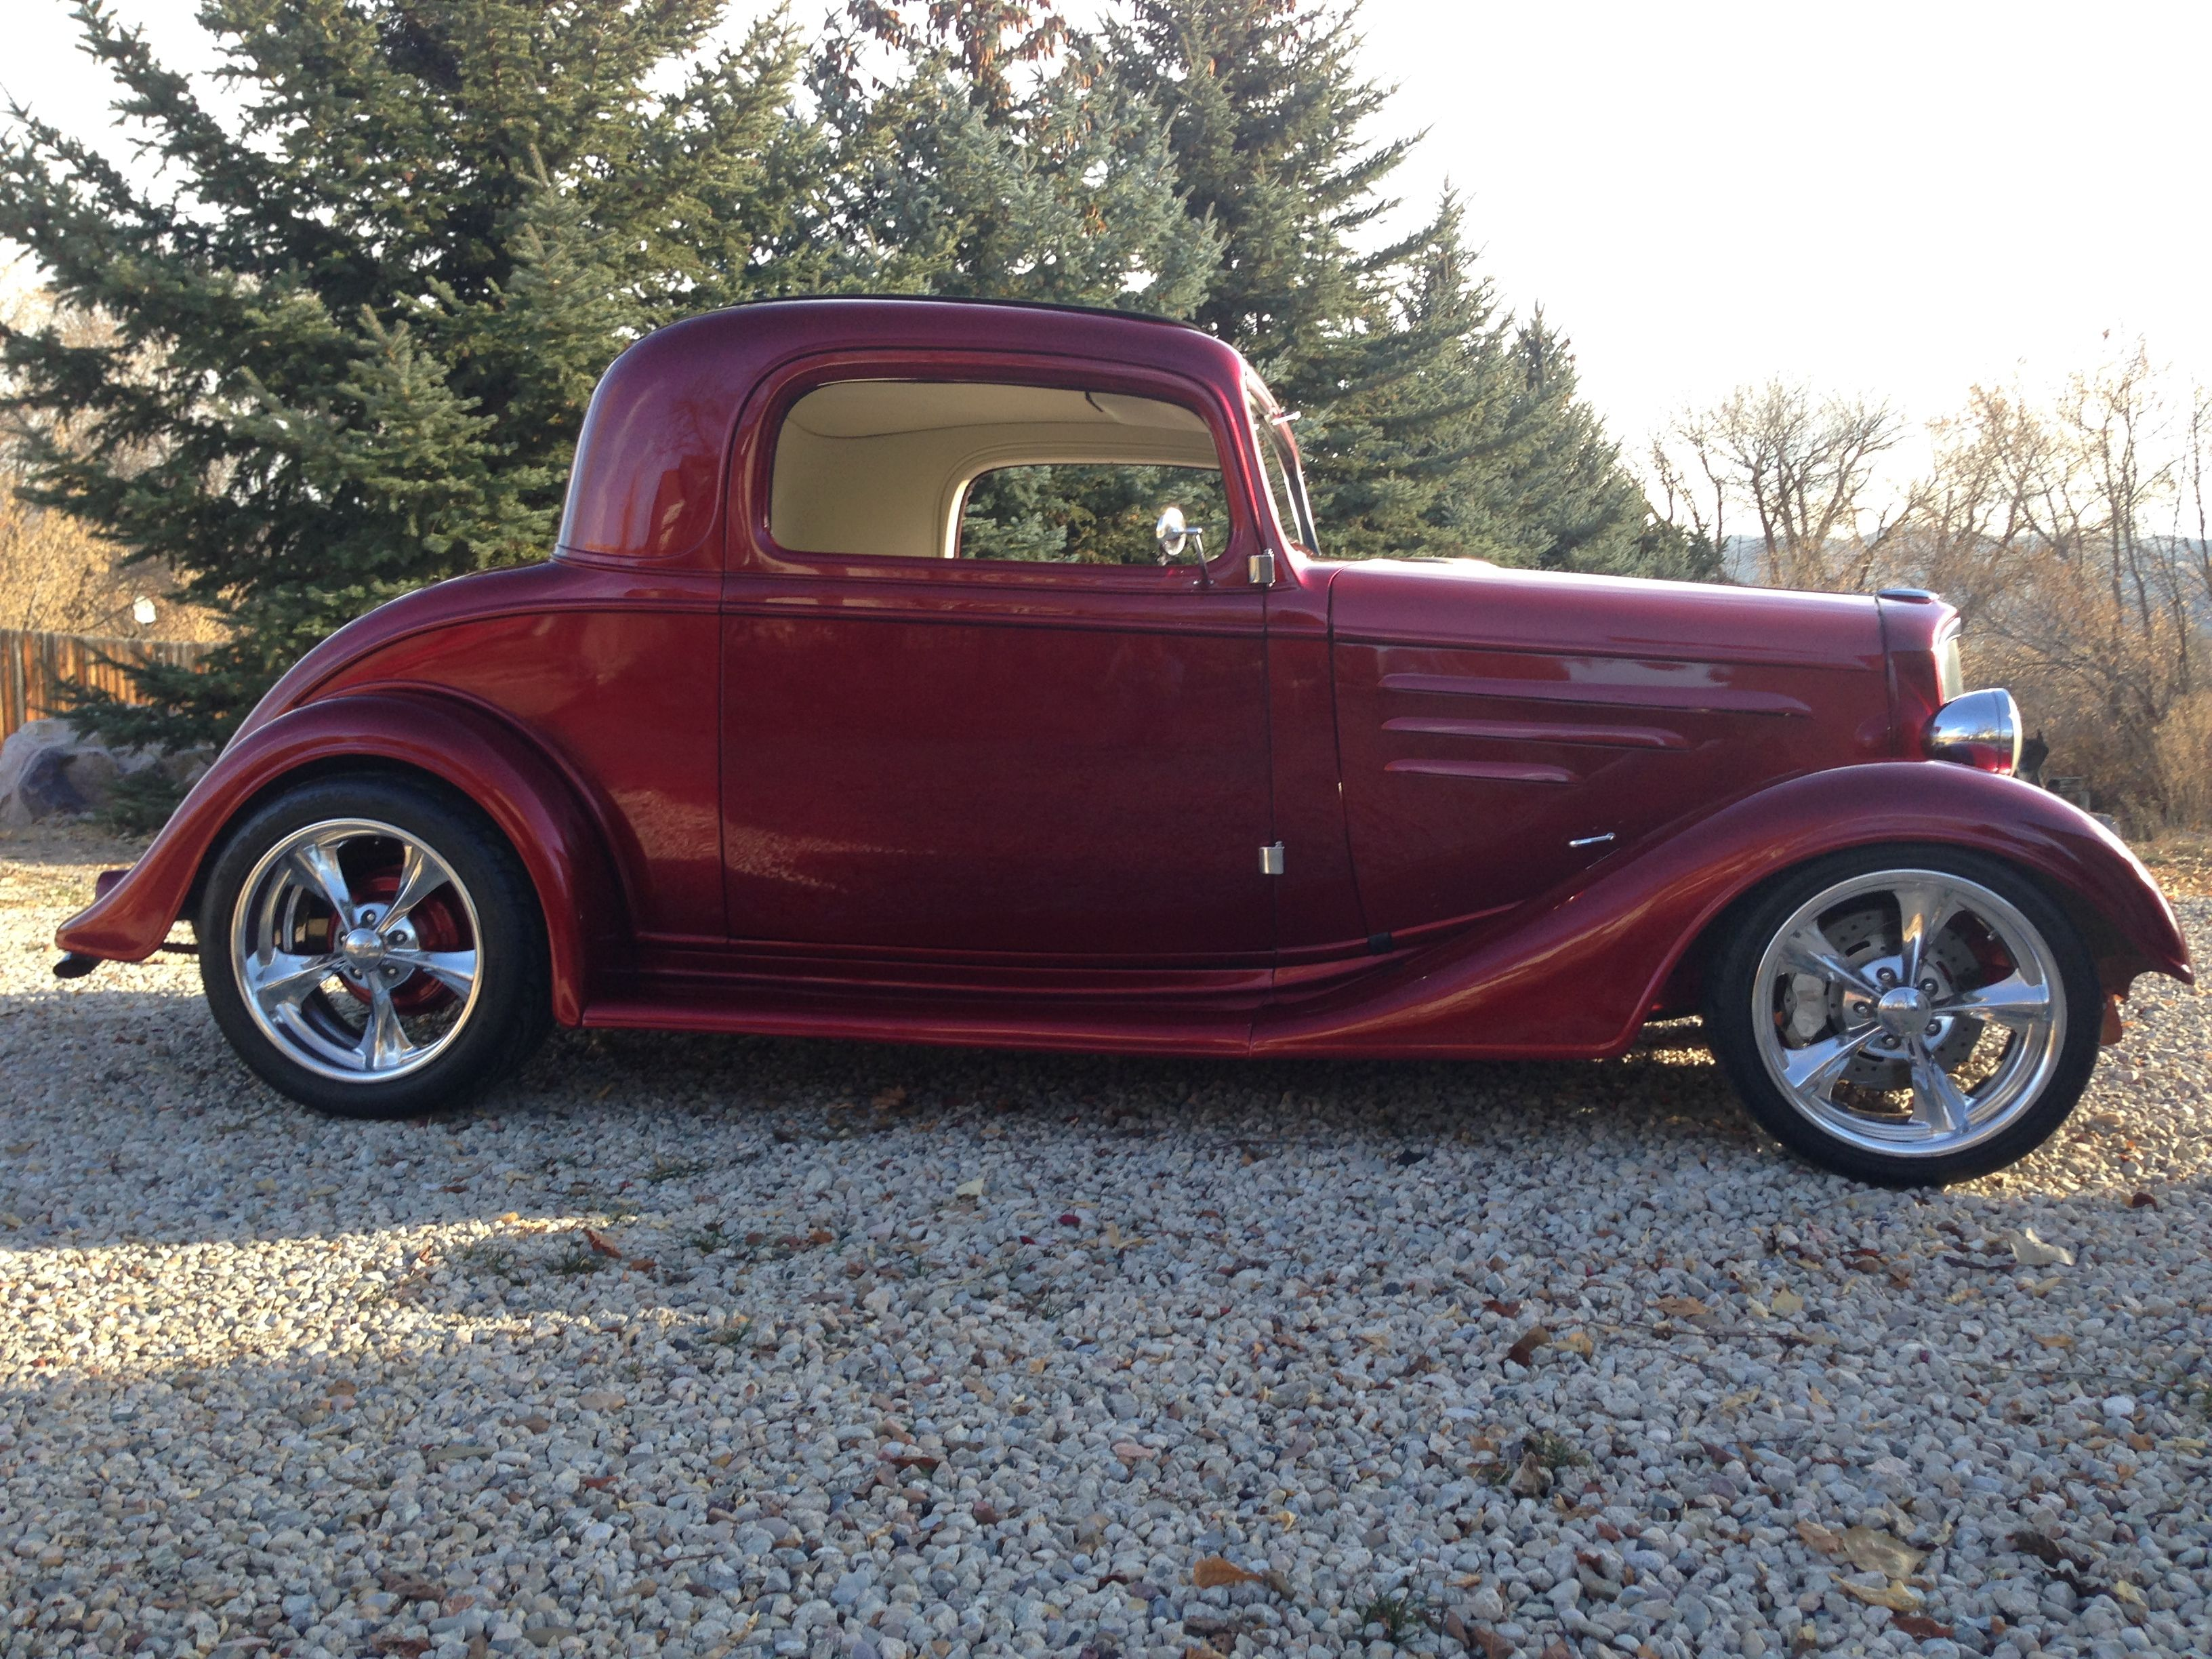 34 Chevy Coupe Hot Rod | Nice Ride | Hot rods, Hot rod trucks, Cars